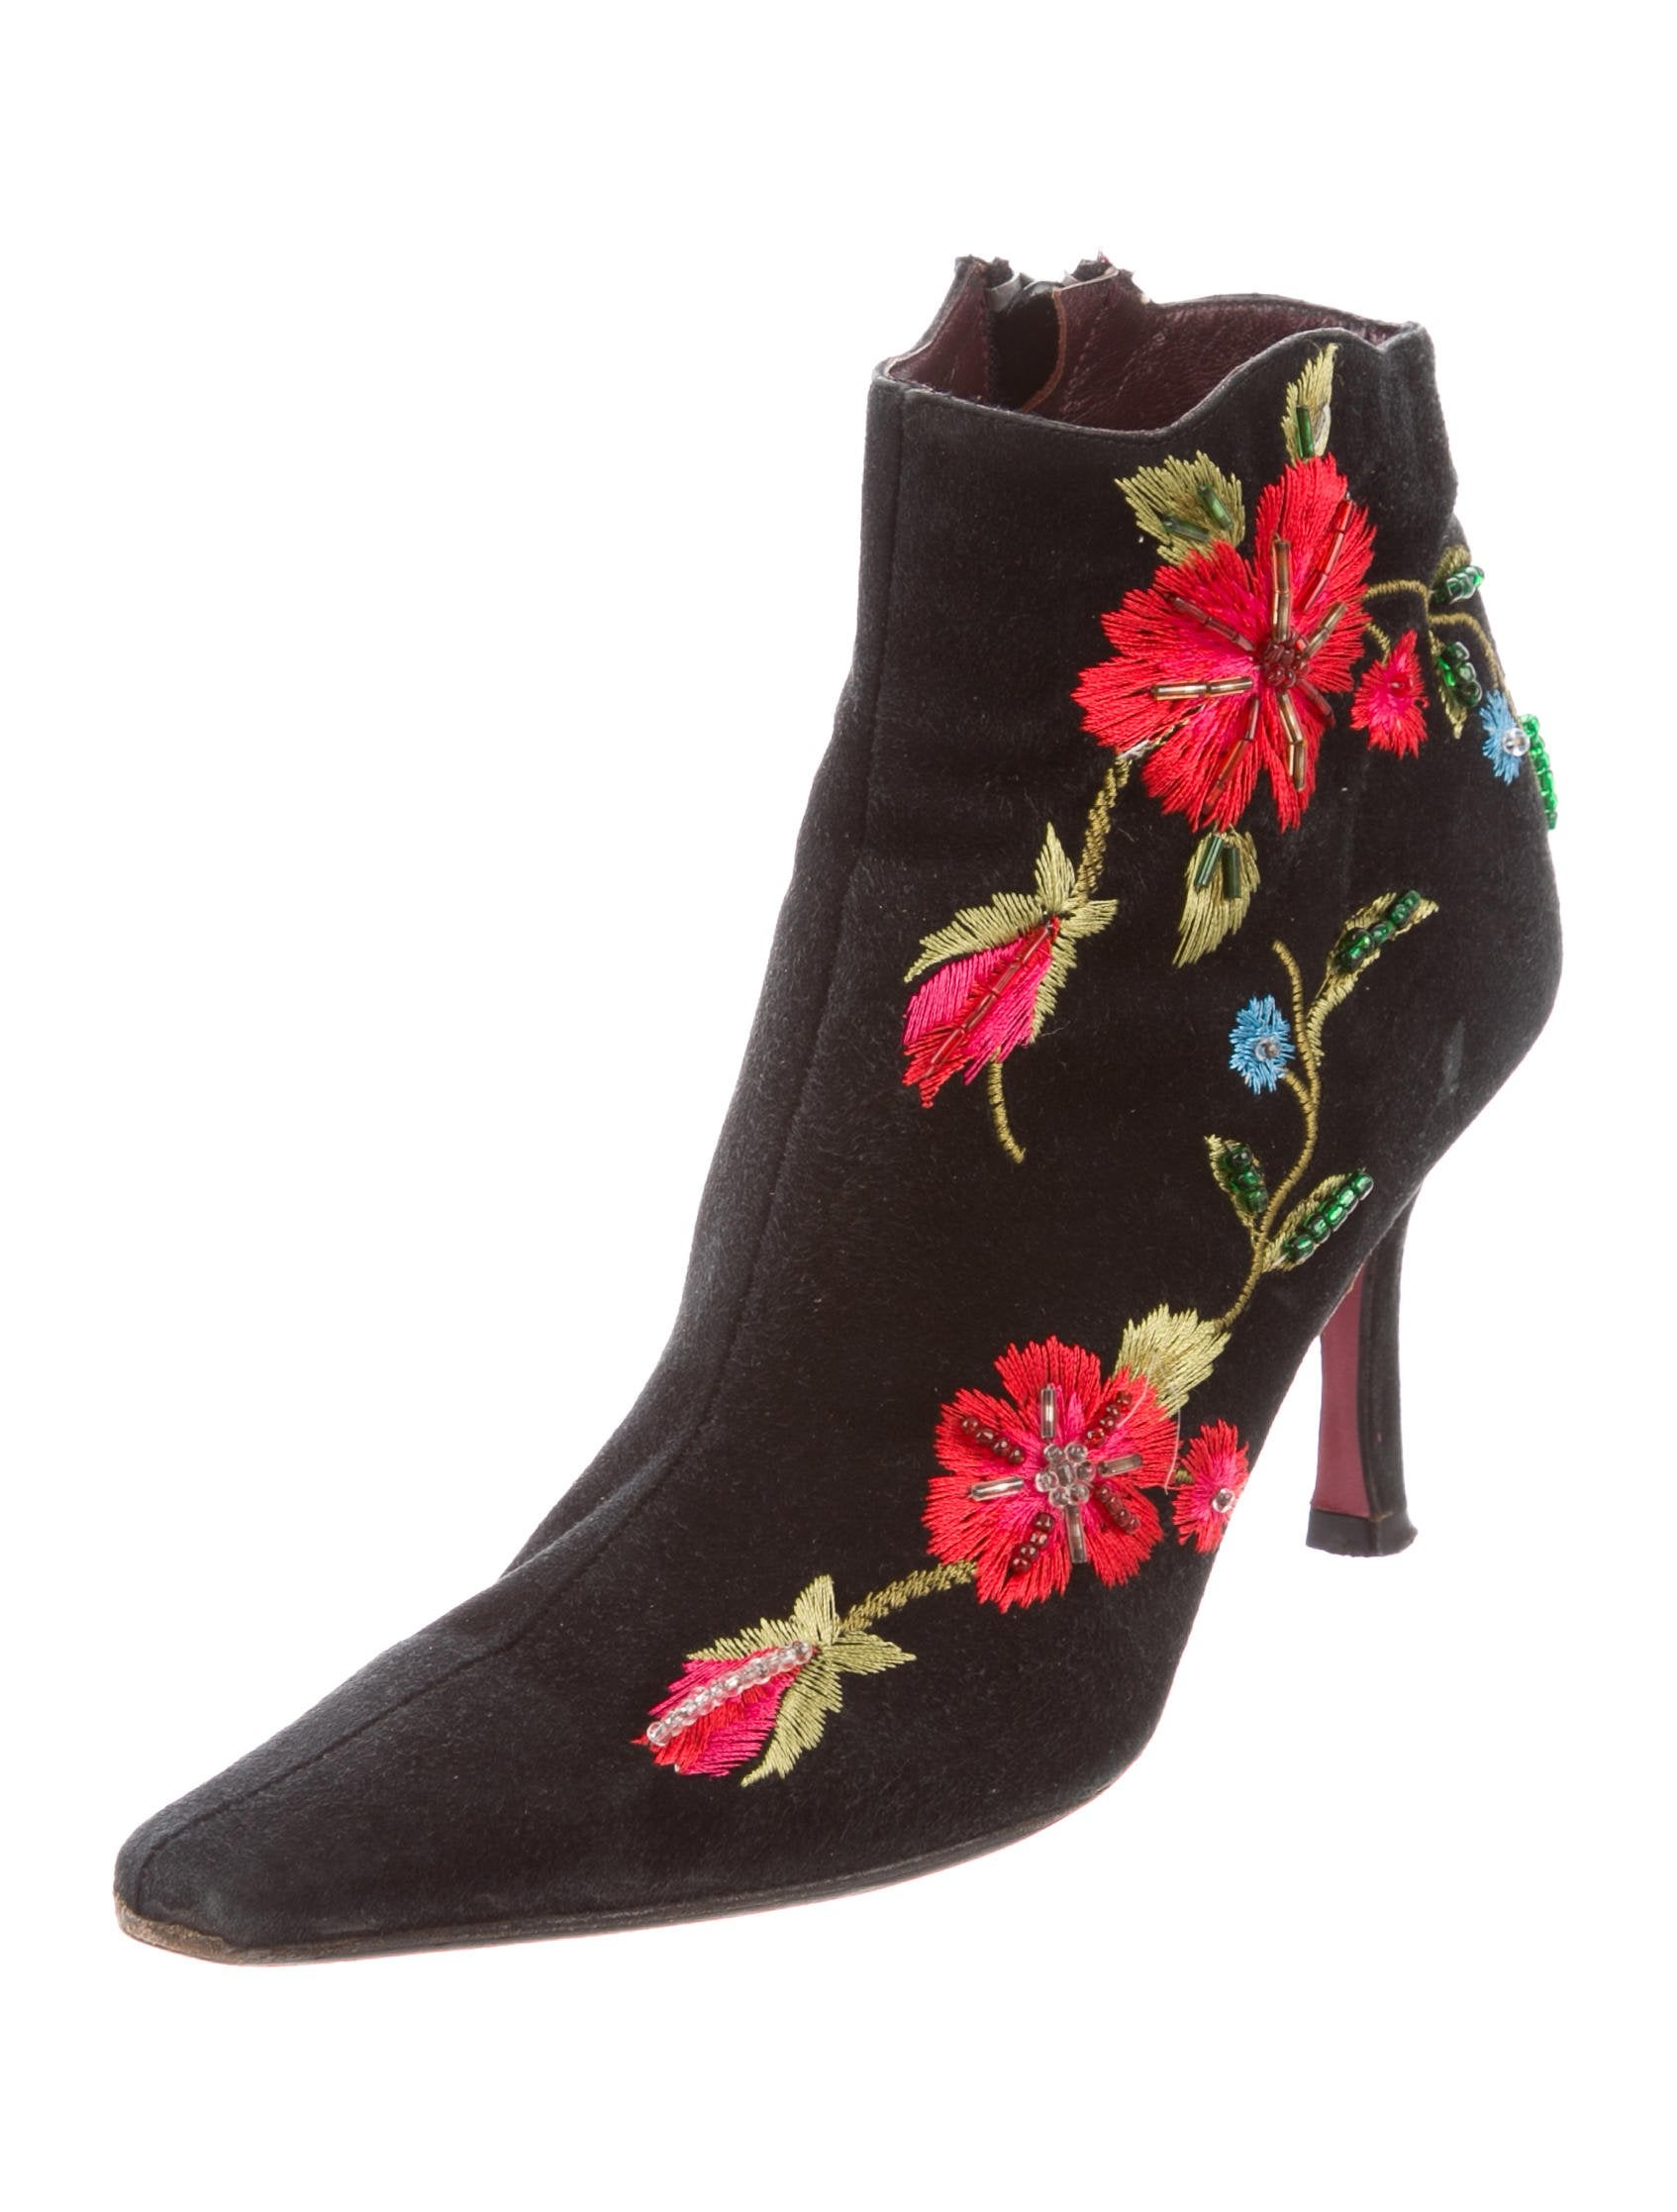 clearance visit with paypal cheap price Ramón Tenza Embroidered Suede Ankle Boots free shipping 2014 buy cheap ebay cheap clearance t43BvSdQ